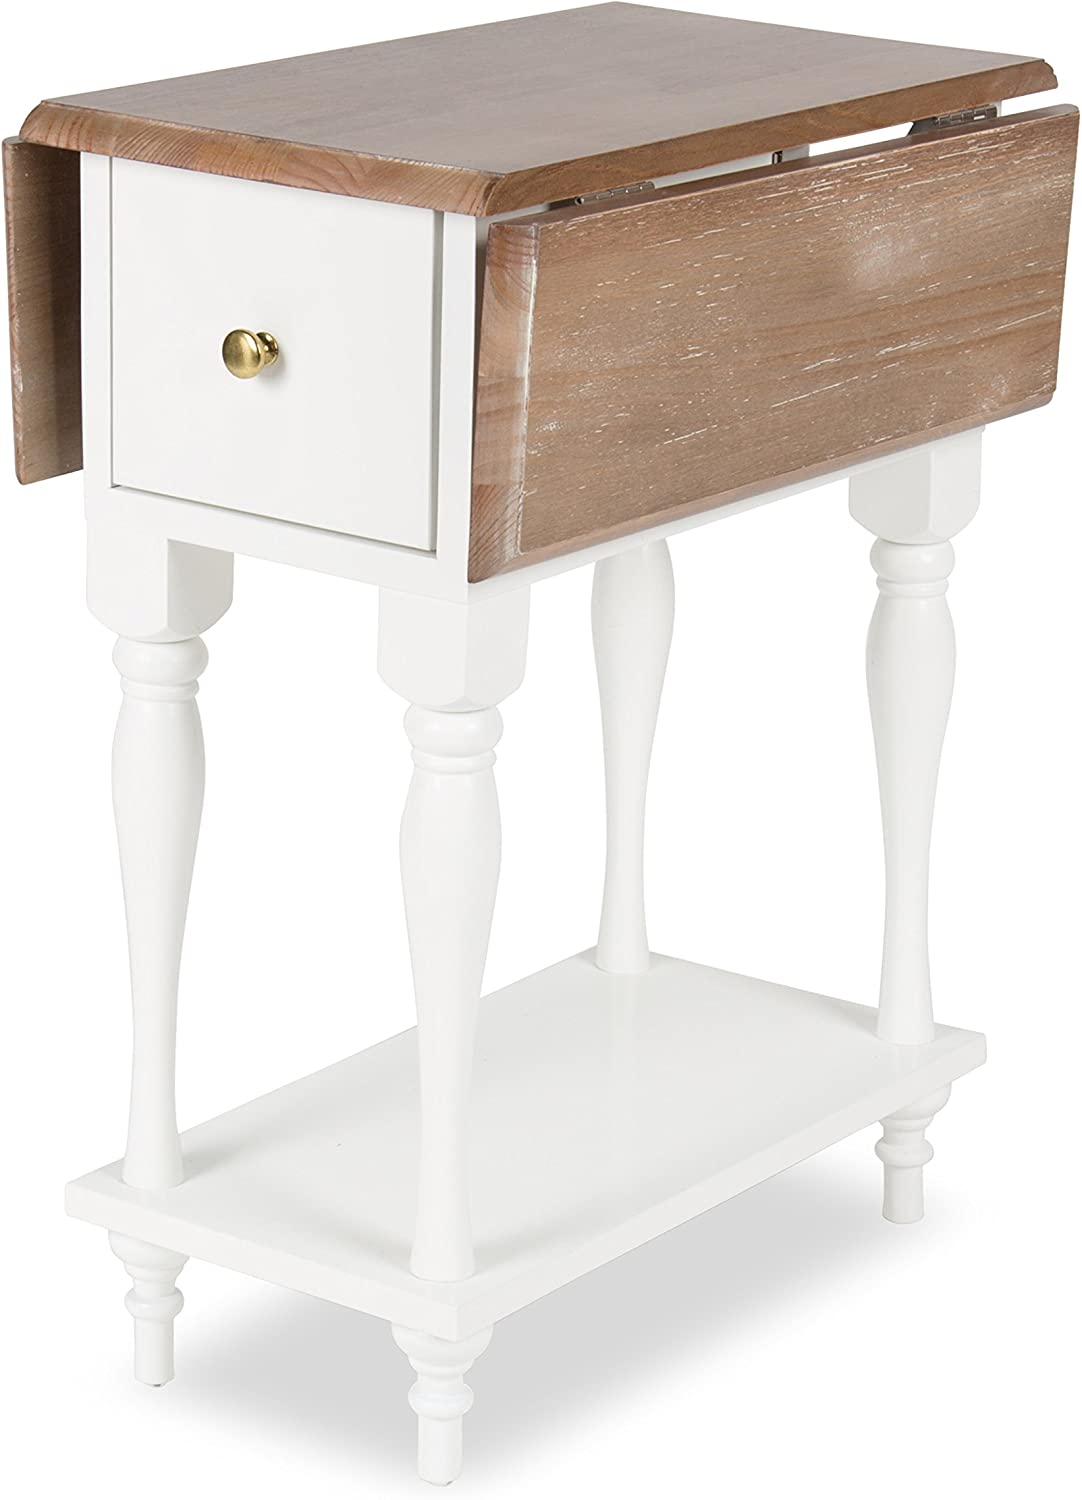 Kate and Laurel Sophia Drop Leaf End Table with 2 Drawers, 12.5x19.5x25.5, Rustic Brown/White